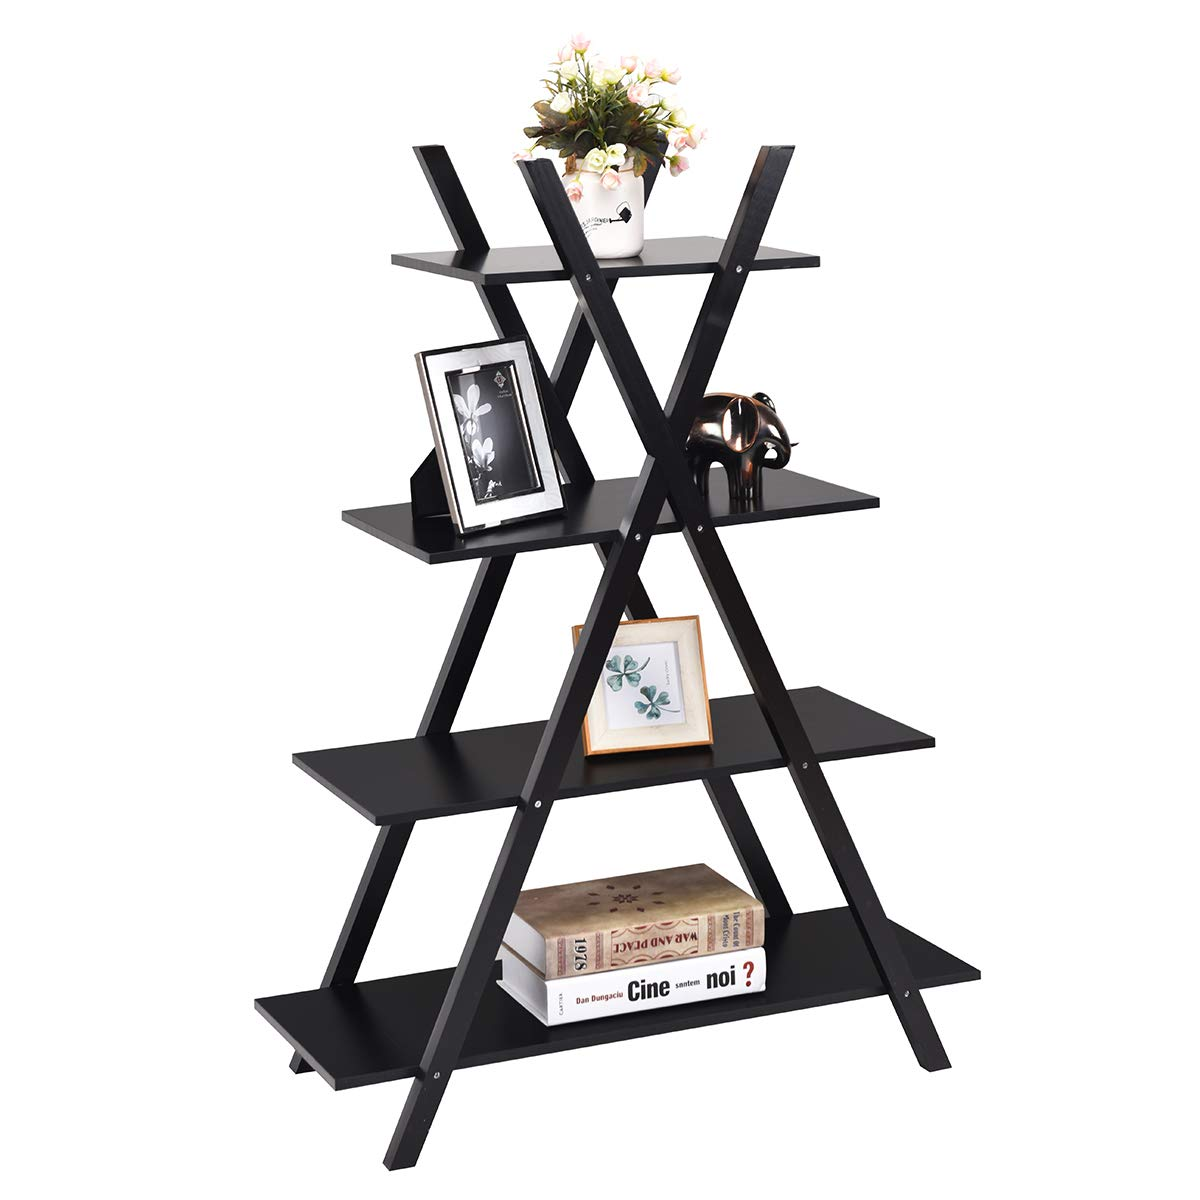 Giantex 4 Tier Bookshelf Storage Shelves Bookcase Ladder Shelf Home Office X-Shape Potted Plant or Flower Rack Display Shelves Easy Assembly Black, 31.5 LX13.0 WX42.9 H